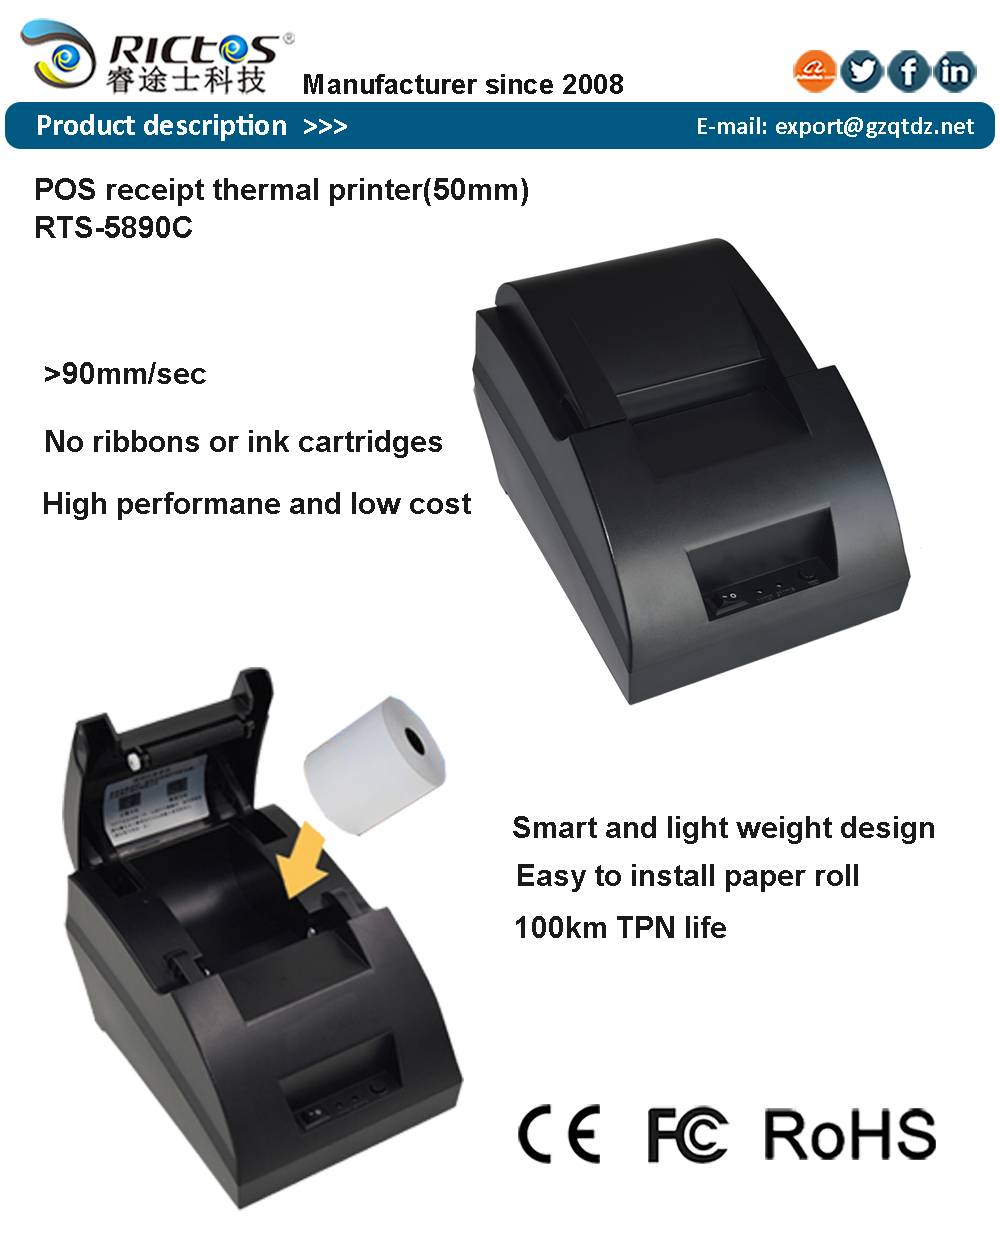 2 inch USB POS thermal printer for bill printing